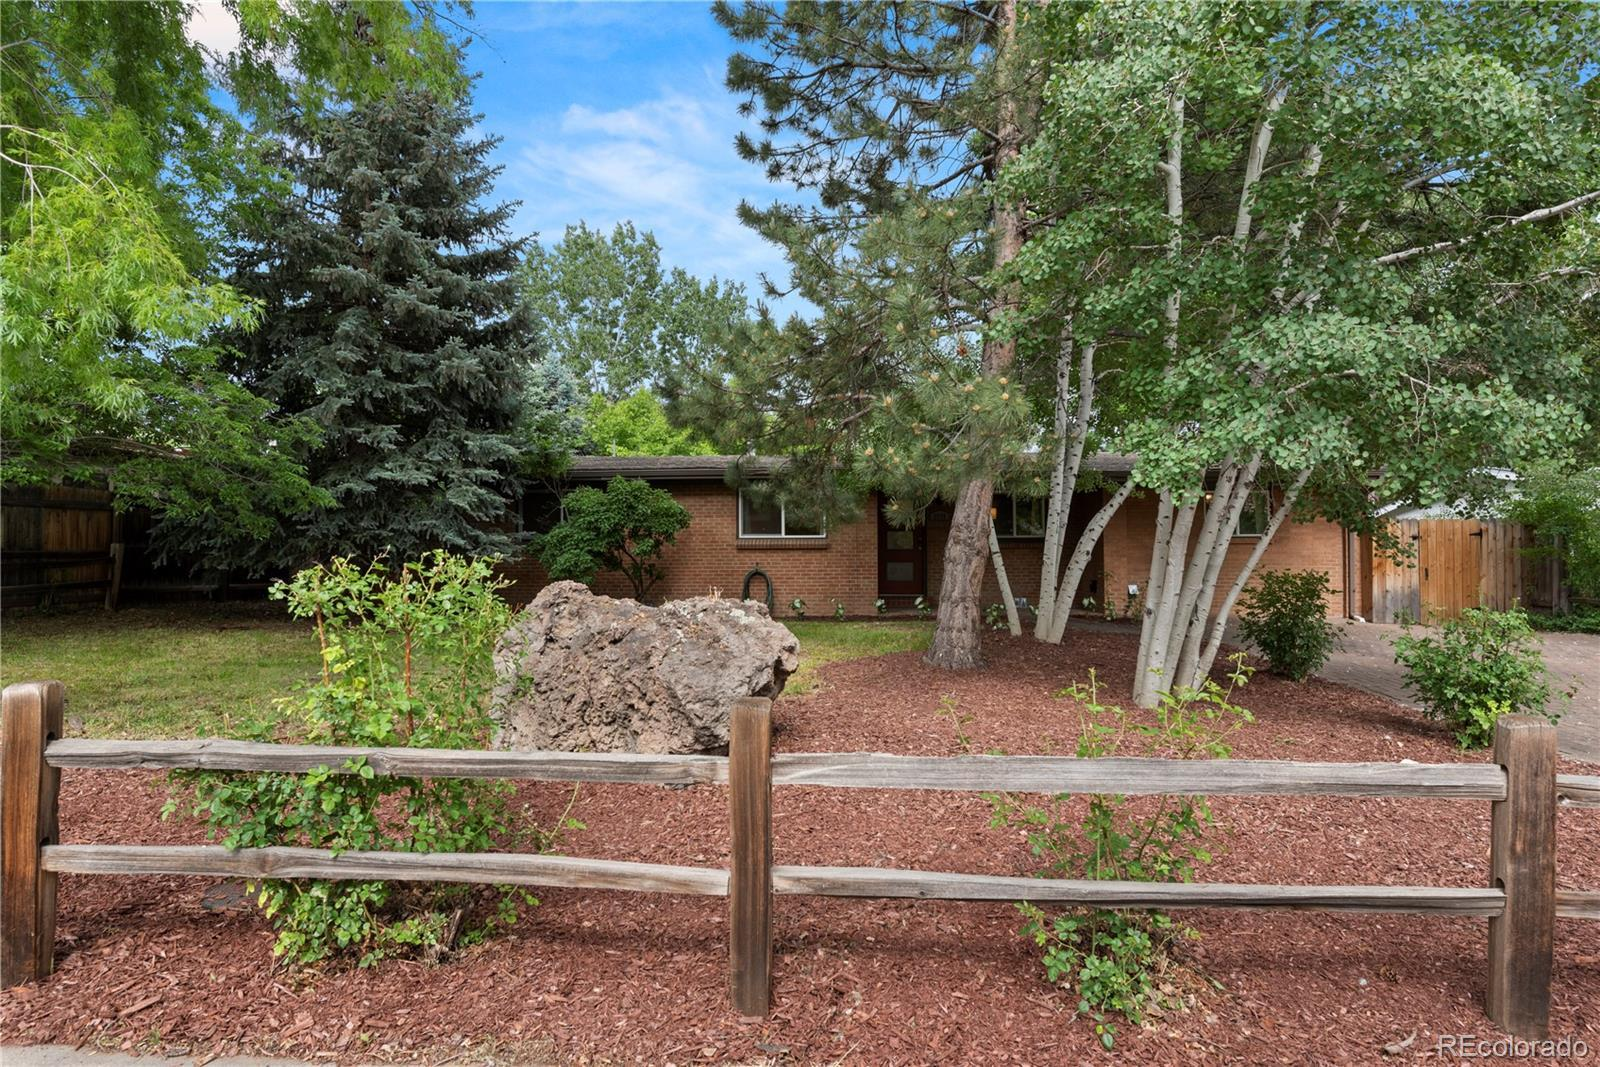 2570 Carr Court, Lakewood, CO 80215 - #: 2533144